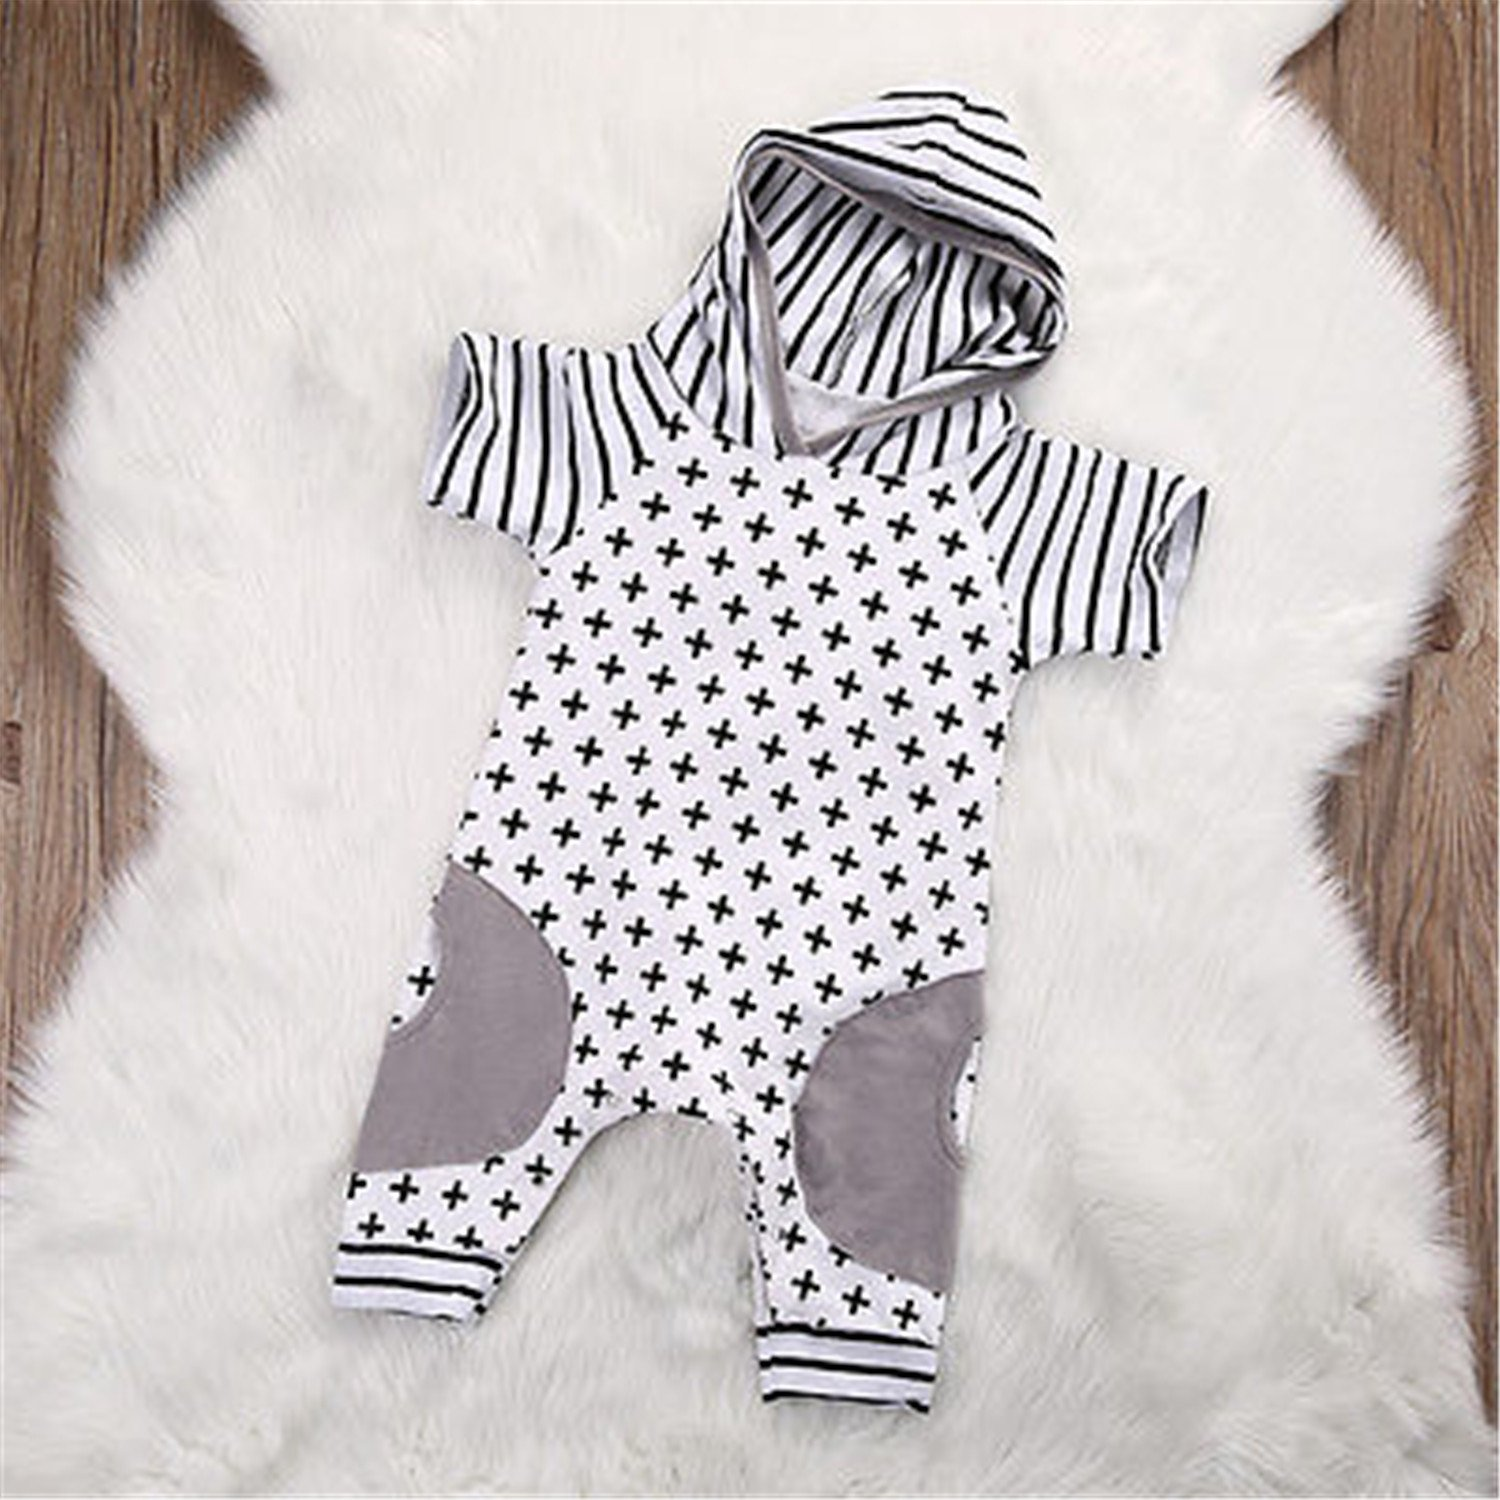 Susan1999 Cute Infant Baby Girls Boy Hooded Short Sleeve Striped Romper Cross Jumpsuit Playsuit Outfits Costume